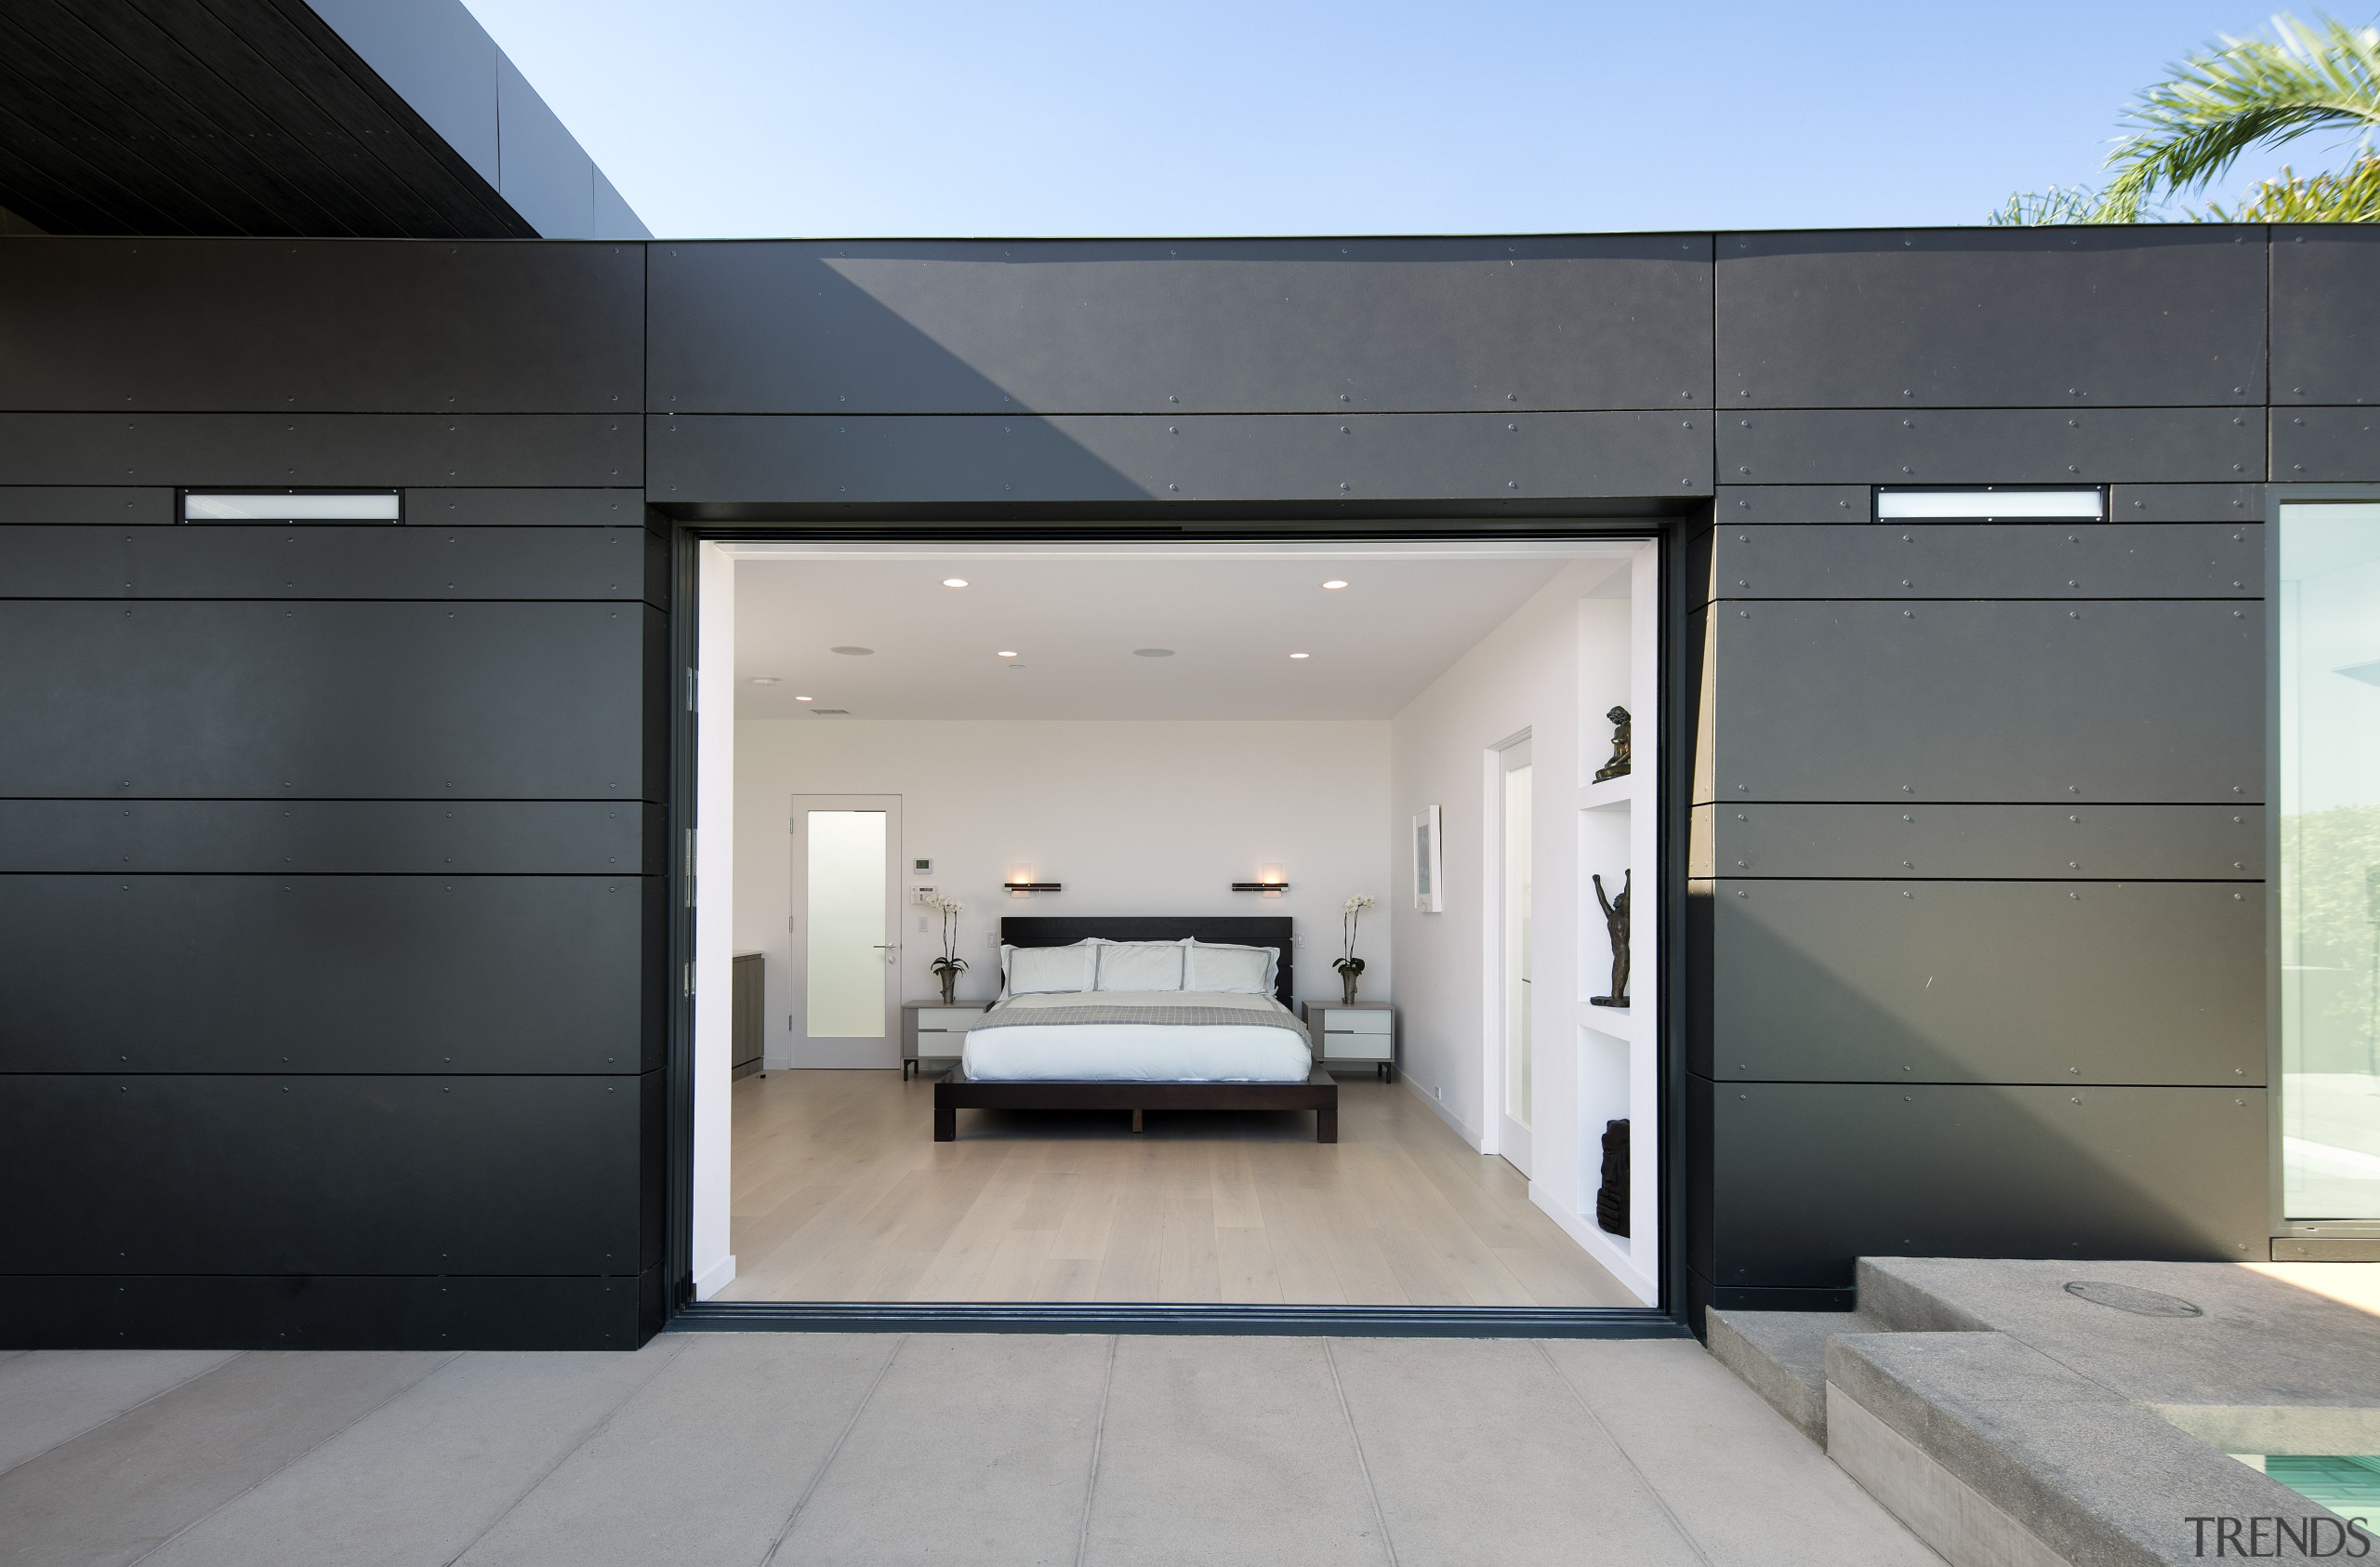 As throughout the rest of the home, this architecture, door, facade, home, house, interior design, real estate, gray, black